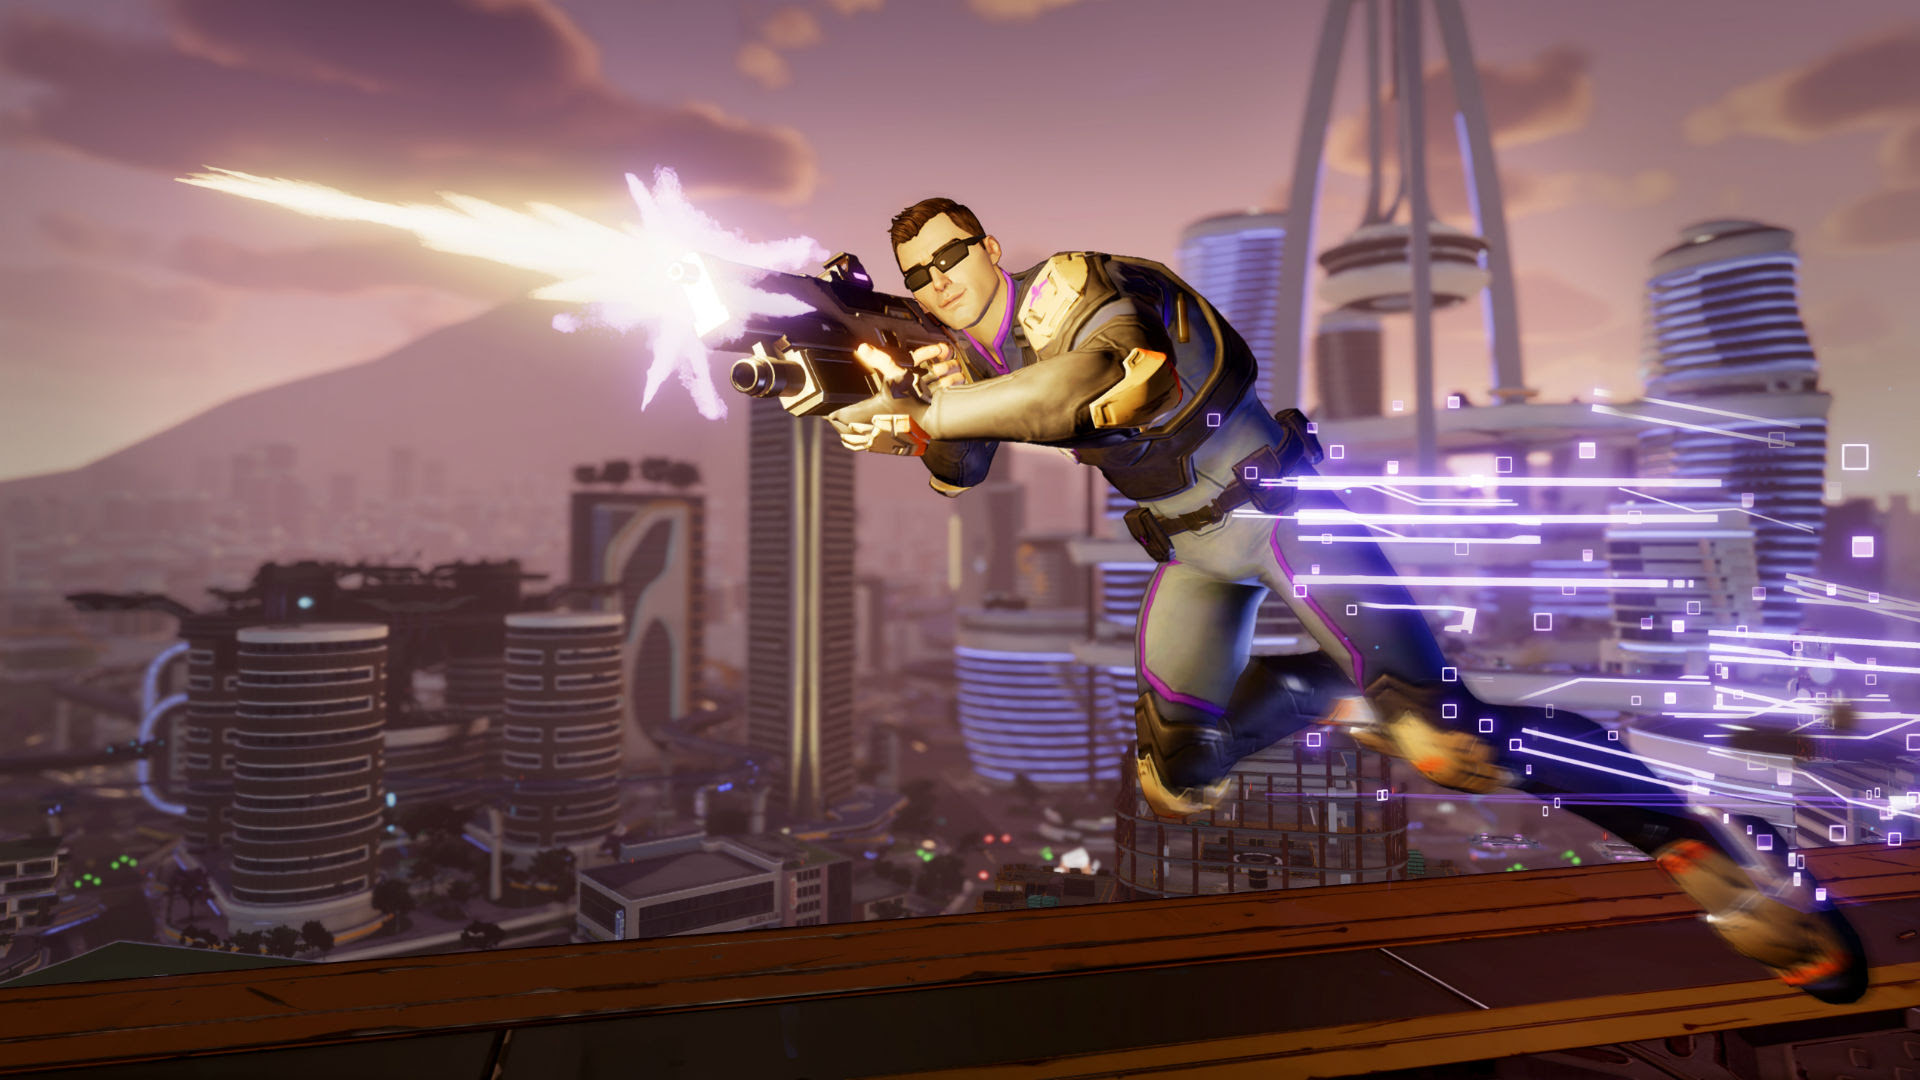 Agents of Mayhem feels like a boiled down Saints Row screenshot